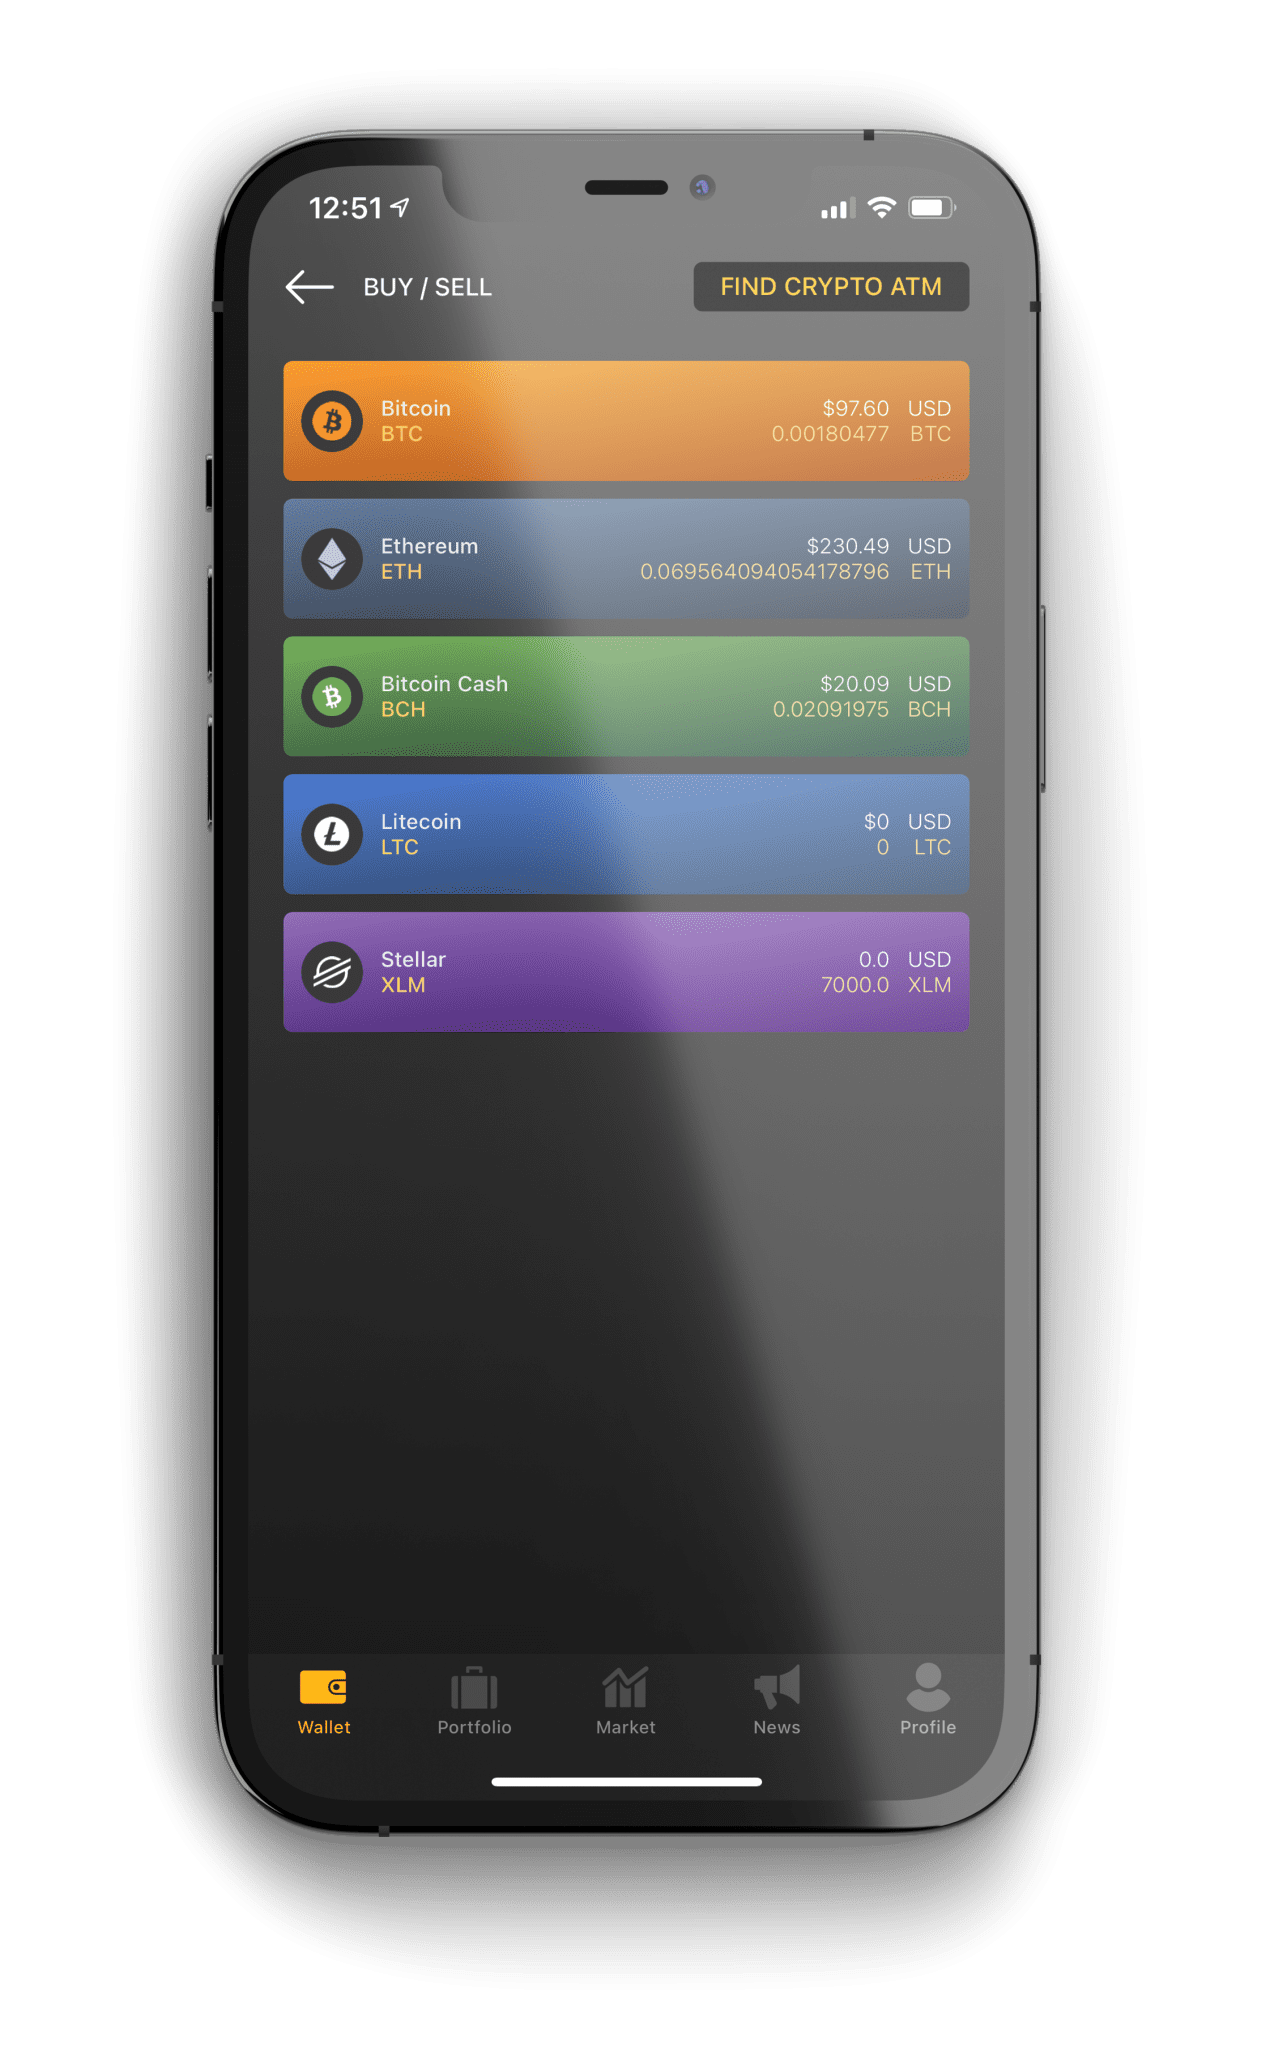 image of Monarch wallet showing the buy & sell wallet screen